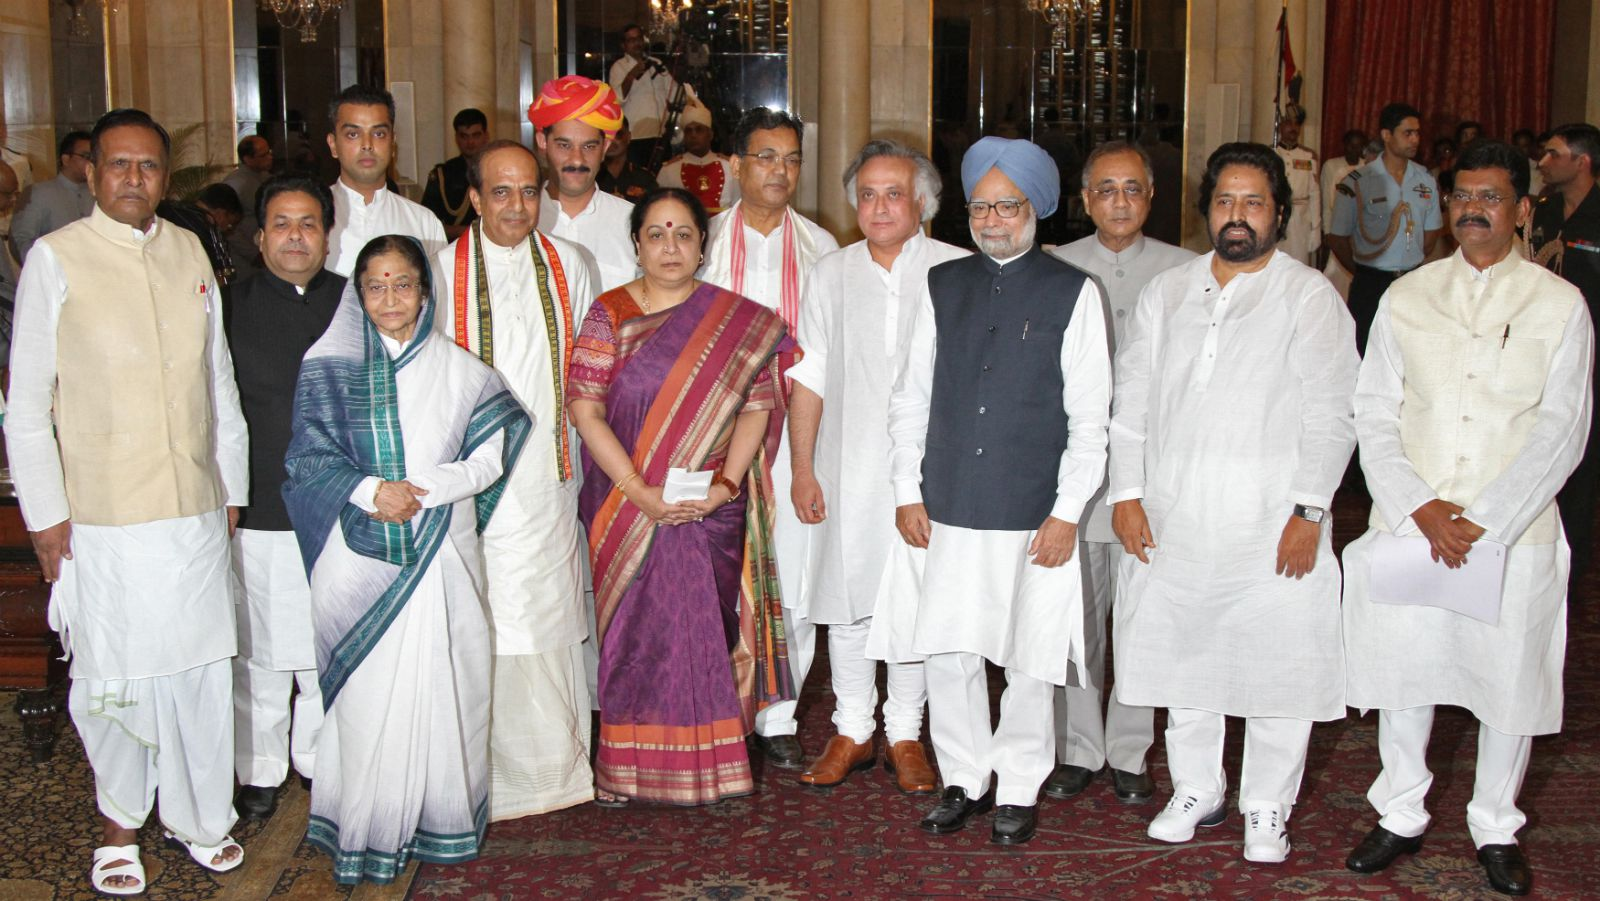 L-R) Newly appointed India's Steel Minister Beni Prasad Verma, Minister of State for Parliamentary Affairs Rajiv Shukla, Minister of State for Communications and Information Technology Milind Deora, President Pratibha Patil, Railways Minister Dinesh Trivedi, Minister of State for Home Affairs Jitendra Singh, Minister of State for Environment and Forests Jayanthi Natarajan, Minister of State for the Development of North Eastern Region Paban Singh Ghatowar, Rural Development Minister Jairam Ramesh, Prime Minister Manmohan Singh, Tribal Affairs and Panchayati Raj Minister Kishore Chandra Deo, Minister of State for Health and Family Welfare Sudip Bandopadhyaya and Minister of State for Agriculture and Food Processing Industries Charan Das Mahant pose for pictures after the swearing-in ceremony of the reshuffled cabinet at the presidential palace in New Delhi July 12, 2011. Prime Minister Manmohan Singh retained key allies in a cabinet reshuffle on Tuesday, shunning big changes in a bid to hold onto power amid charges of graft and policy paralysis.